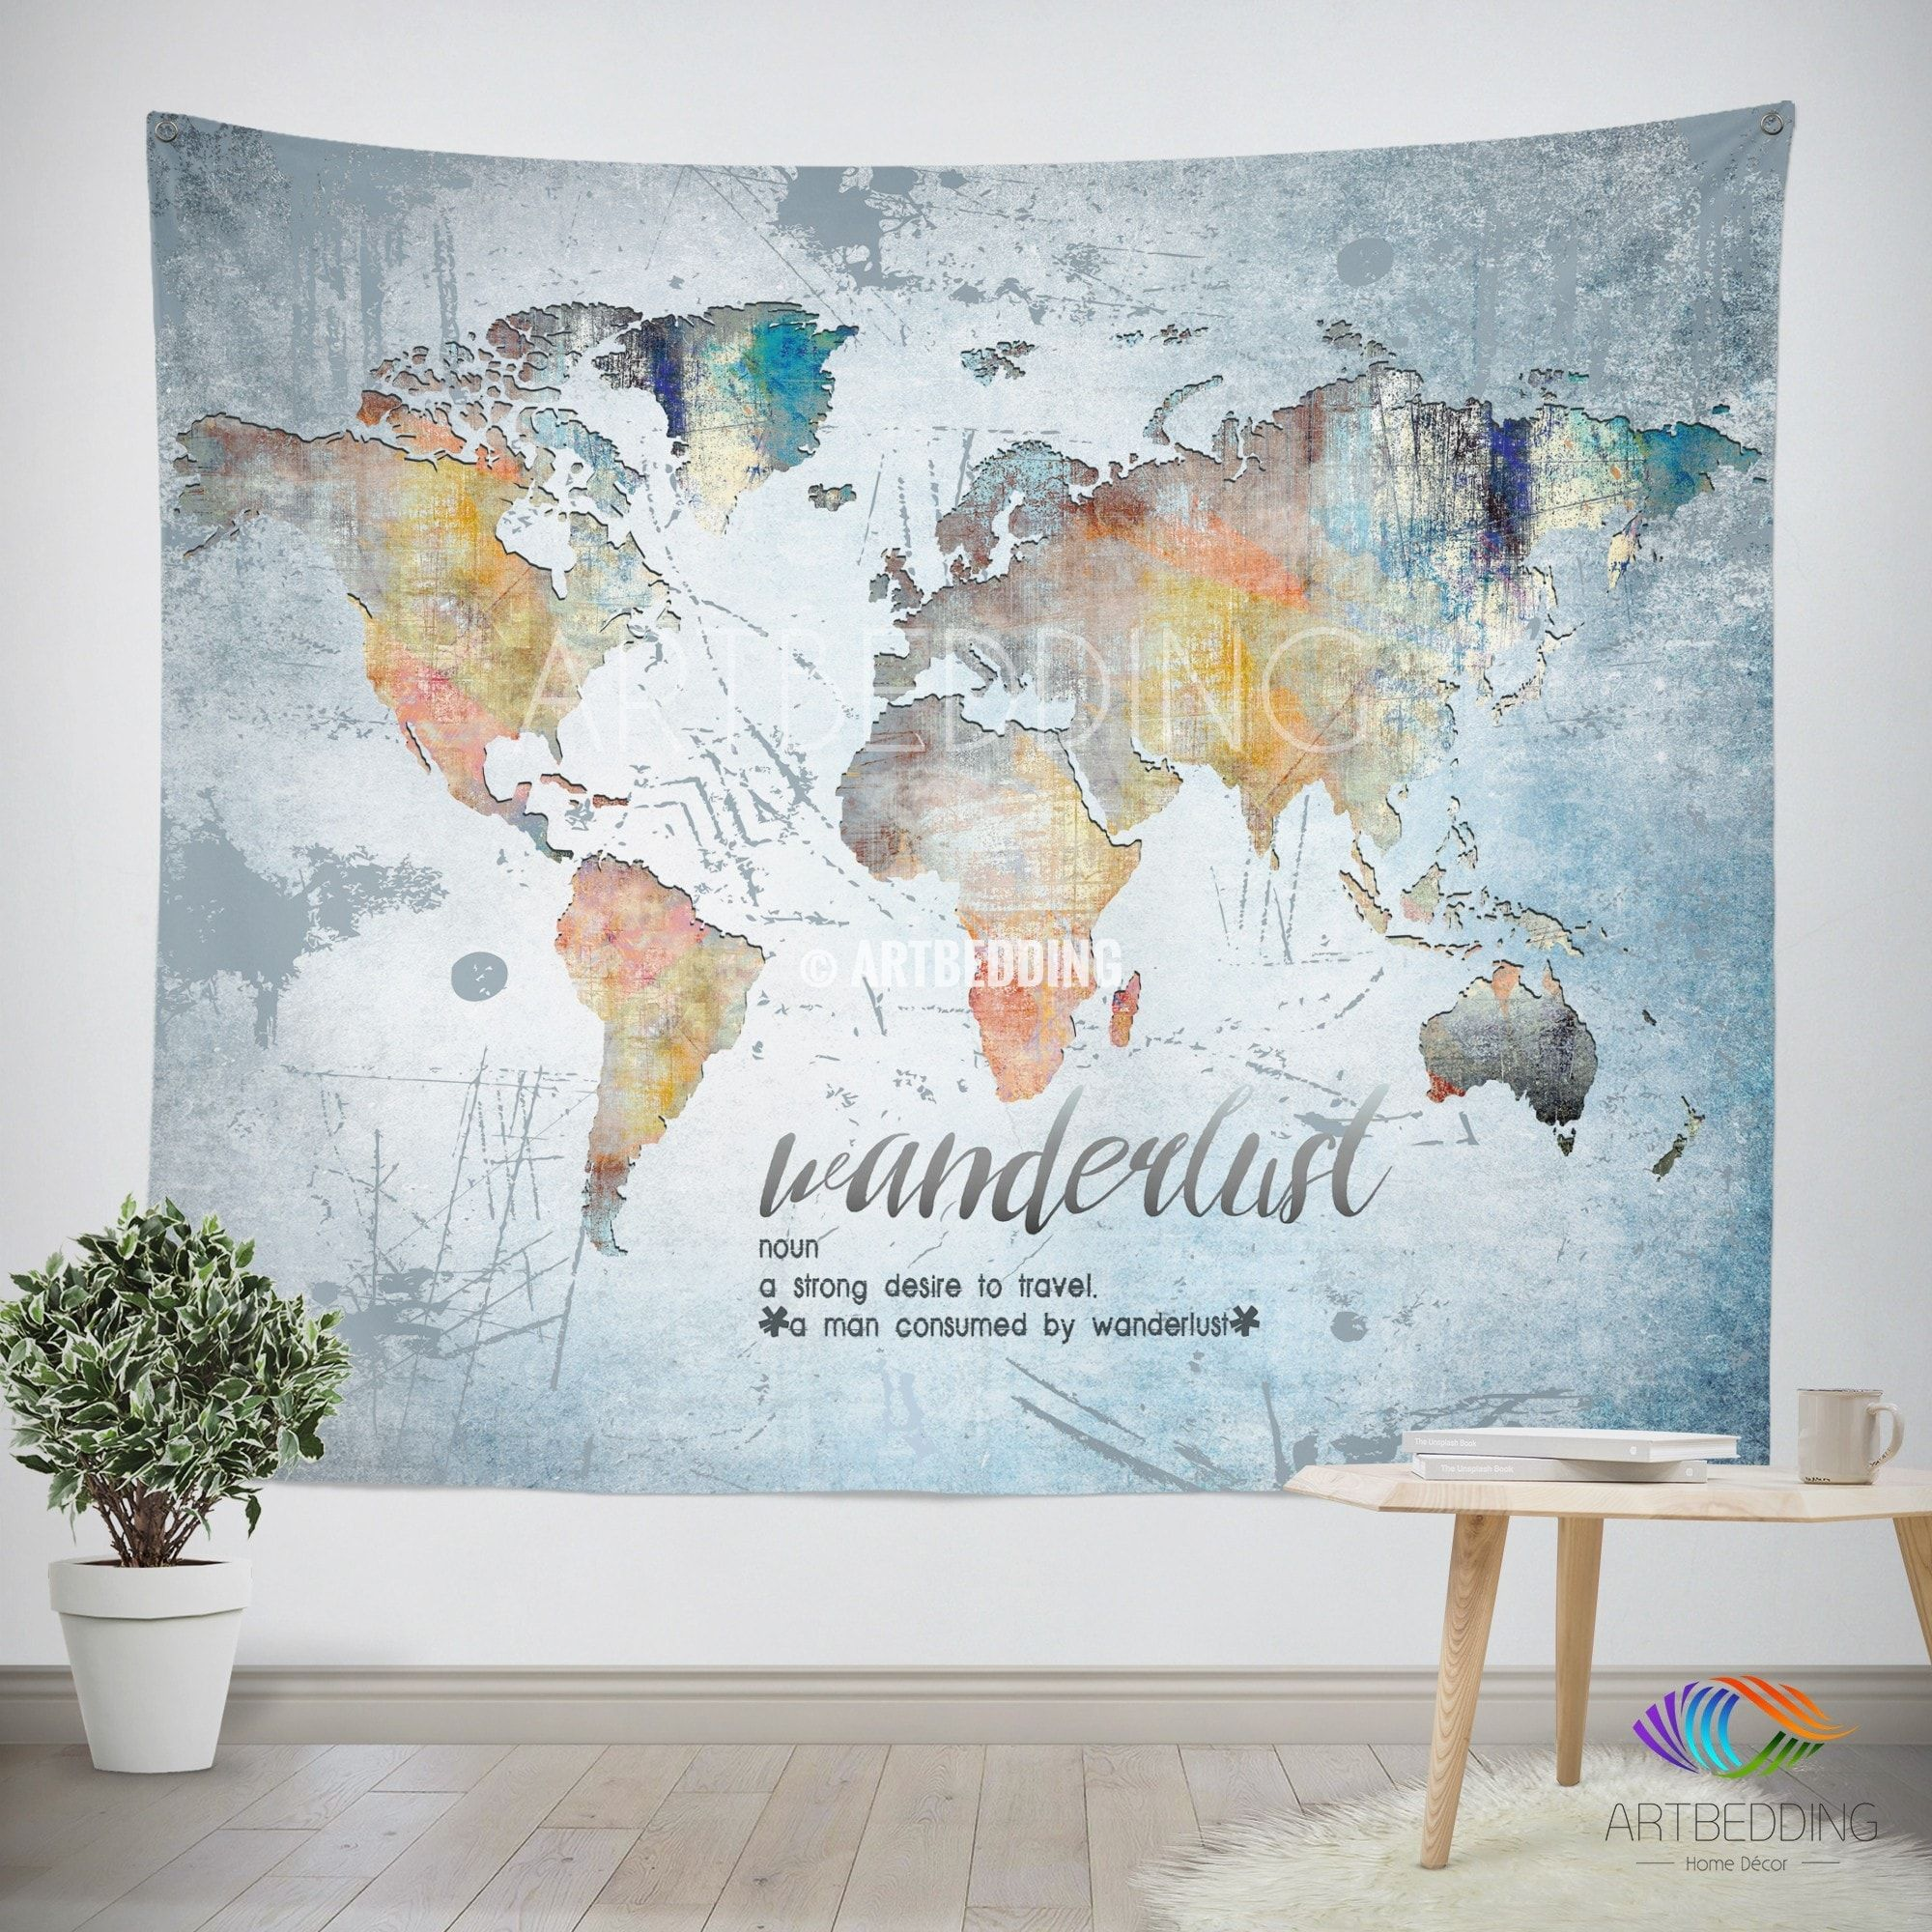 Wanderlust Quote Wall Tapestry World Map Watercolor Wall Hanging